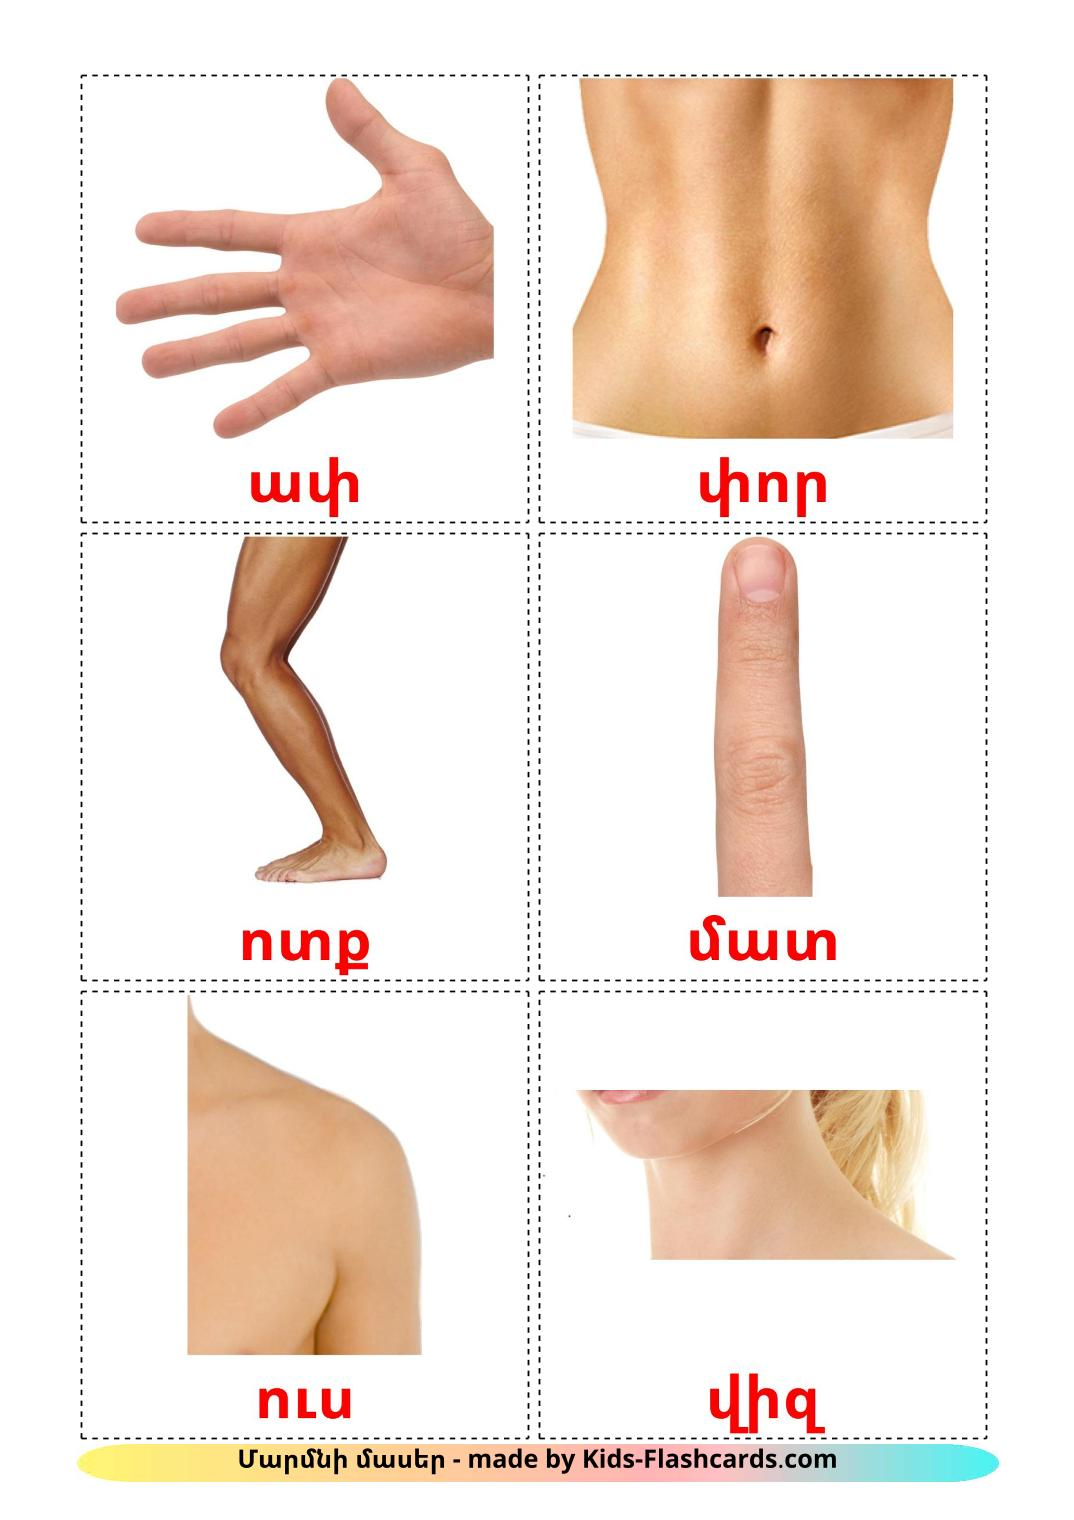 Body Parts - 26 Free Printable armenian Flashcards